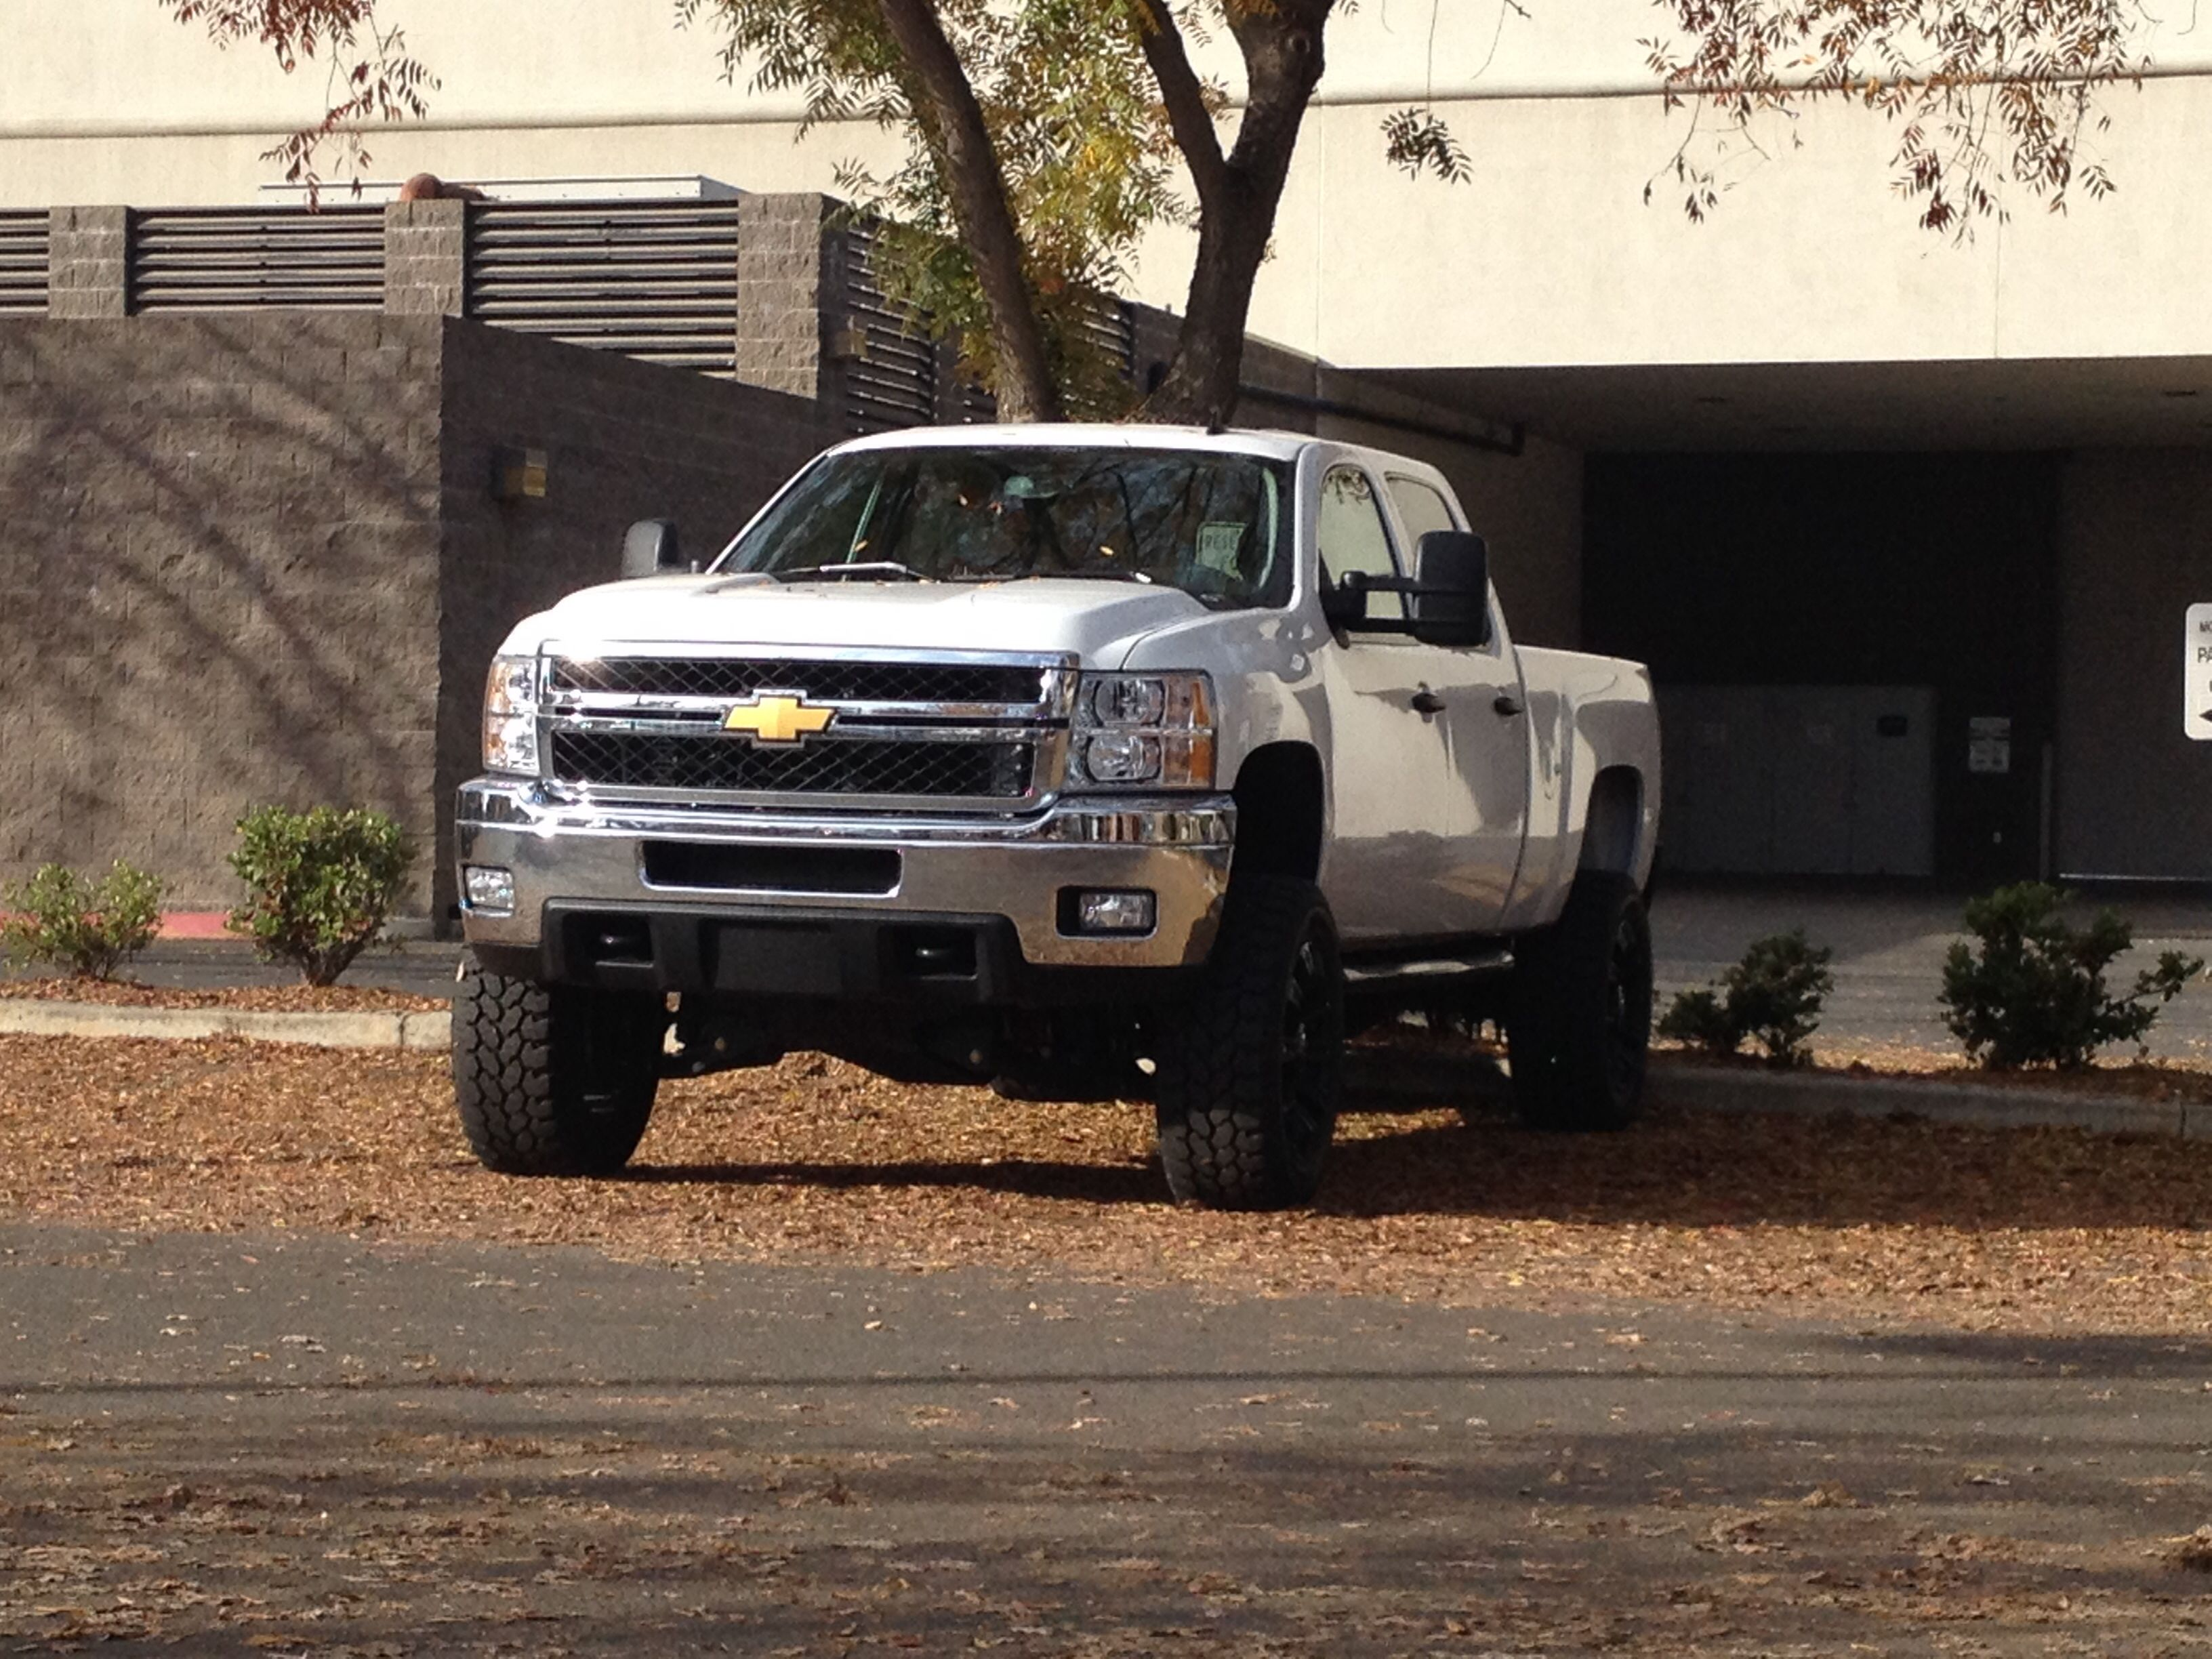 2013 Chevy Duramax 2500hd A Great Fall Day Some Of My